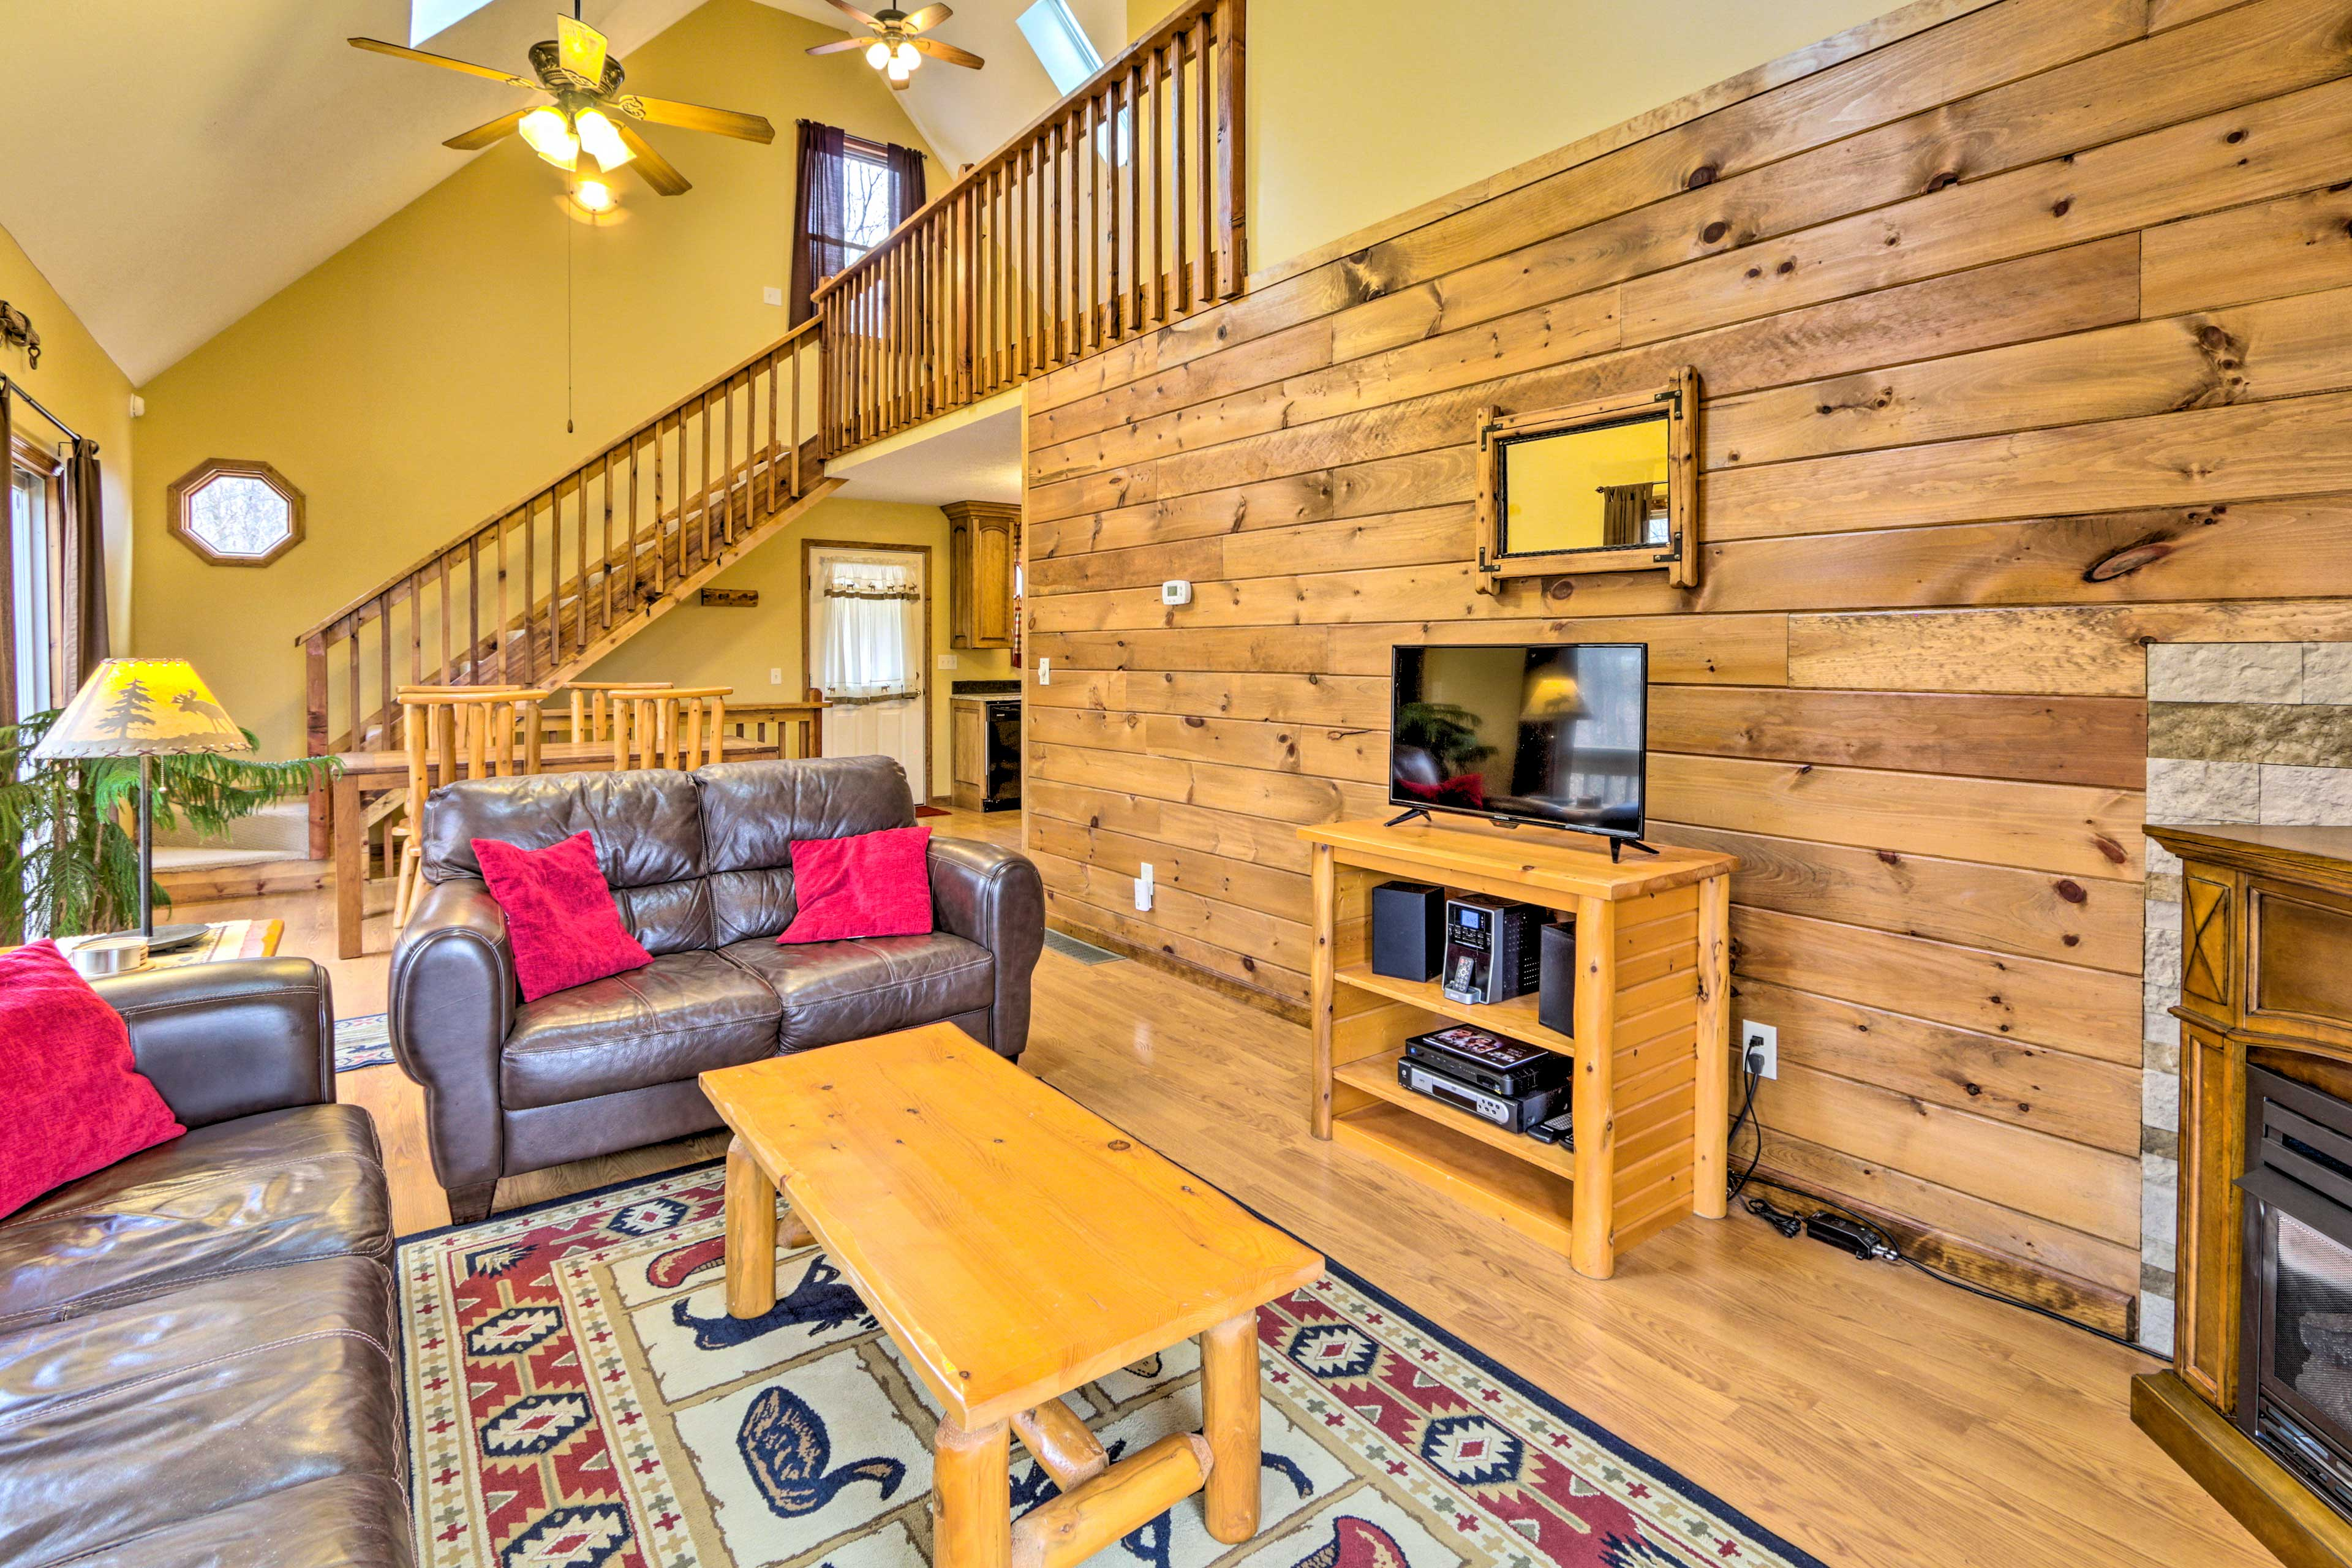 Come visit this 2-bedroom, 1.5-bathroom vacation rental in The Hocking Hills!